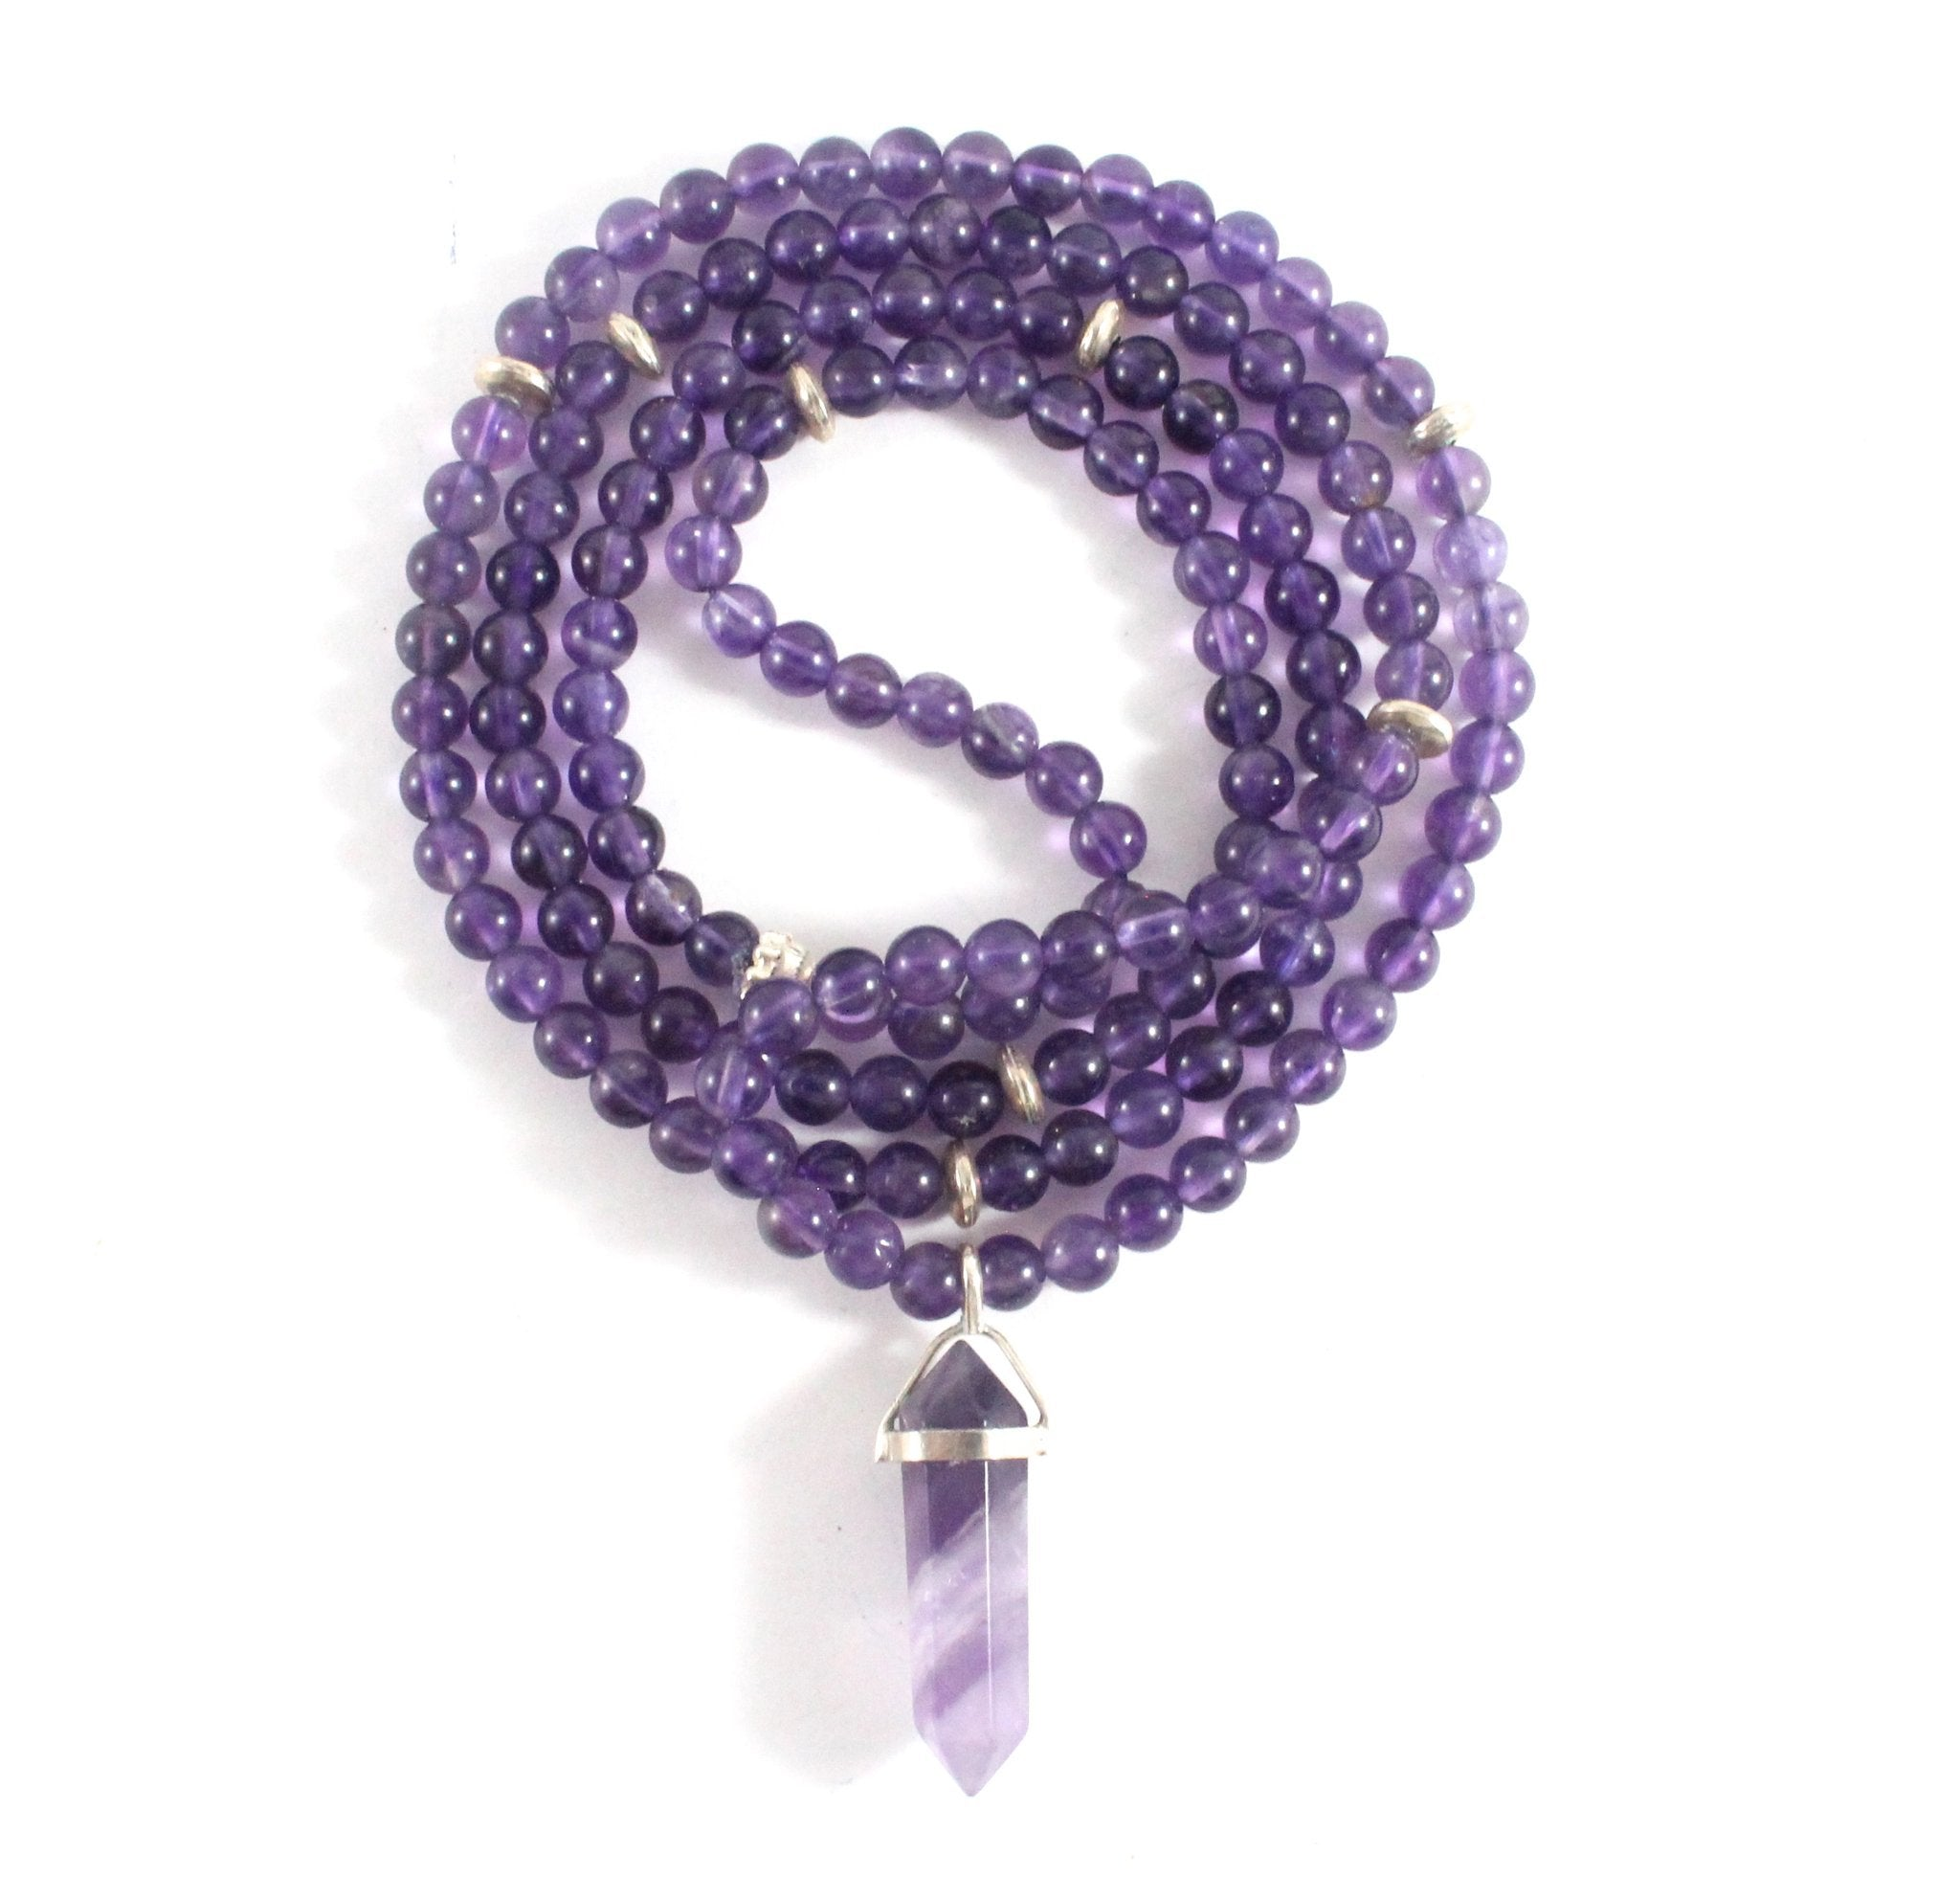 Amethyst Necklace & Pendant - Chakra Collection - BabMakkah Stores